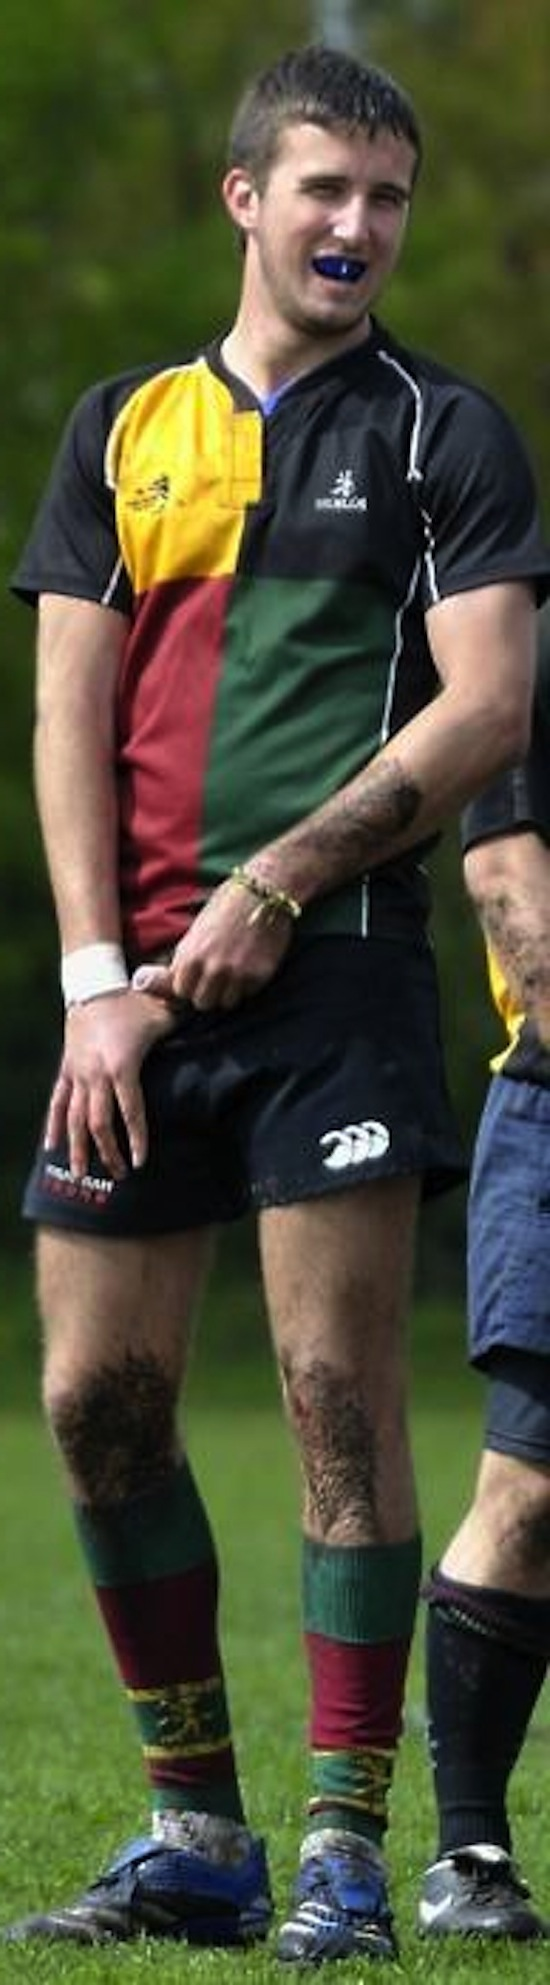 hot uncut rugby player pissing in public